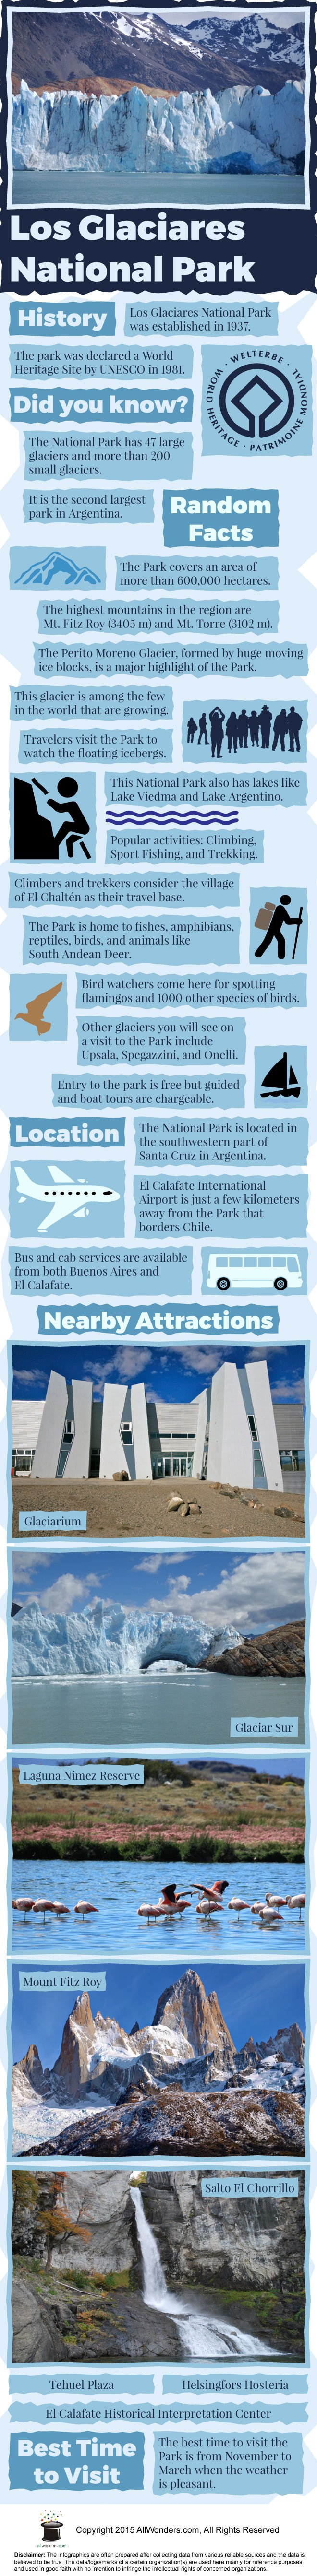 Los Glaciares National Park Infographic